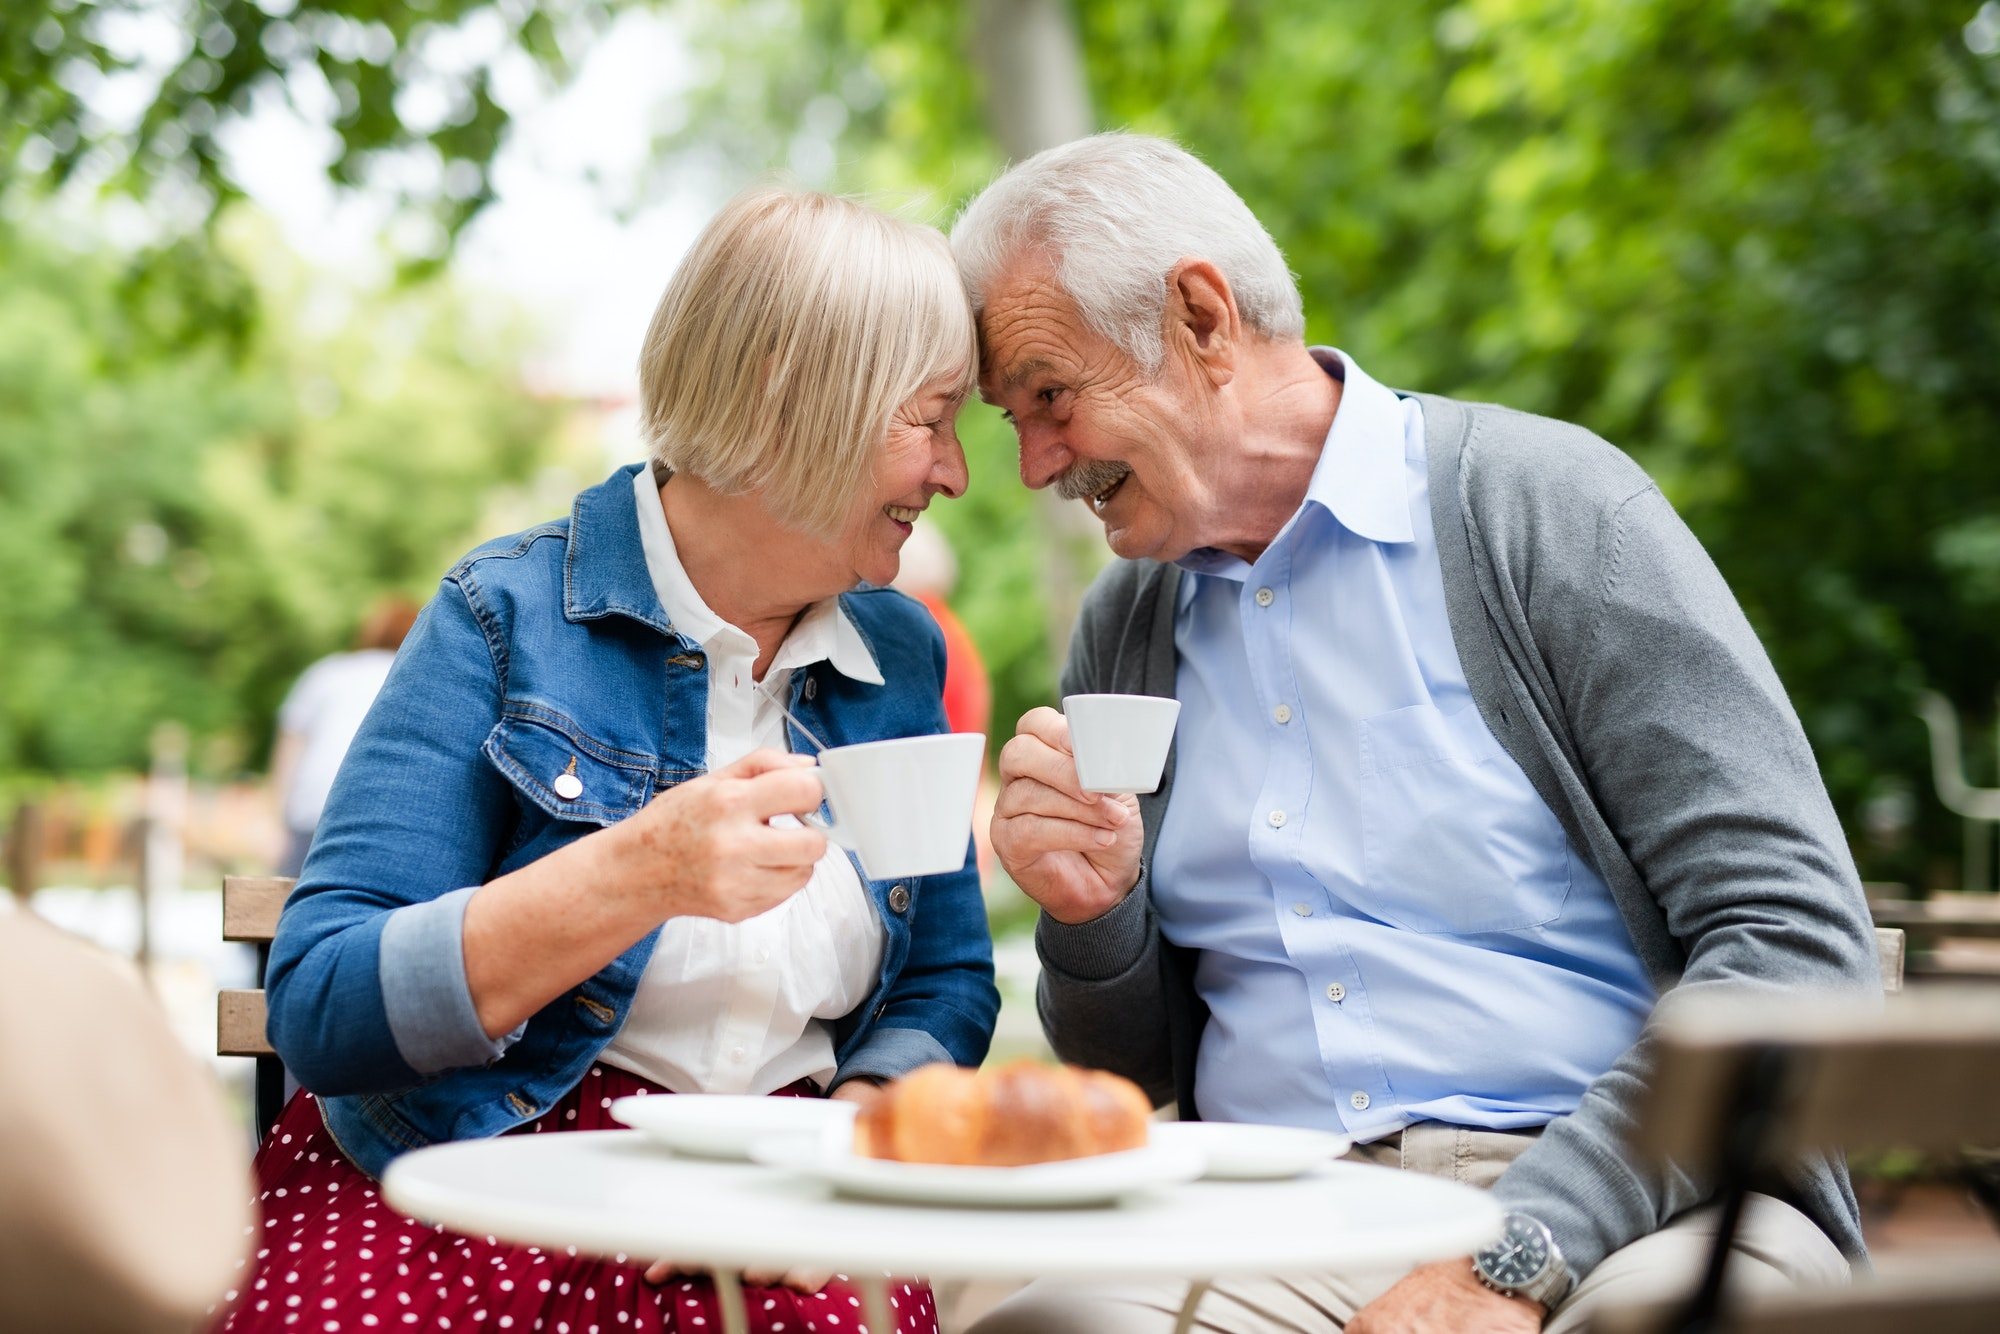 Happy senior couple in love sitting outdoors in cafe, having fun